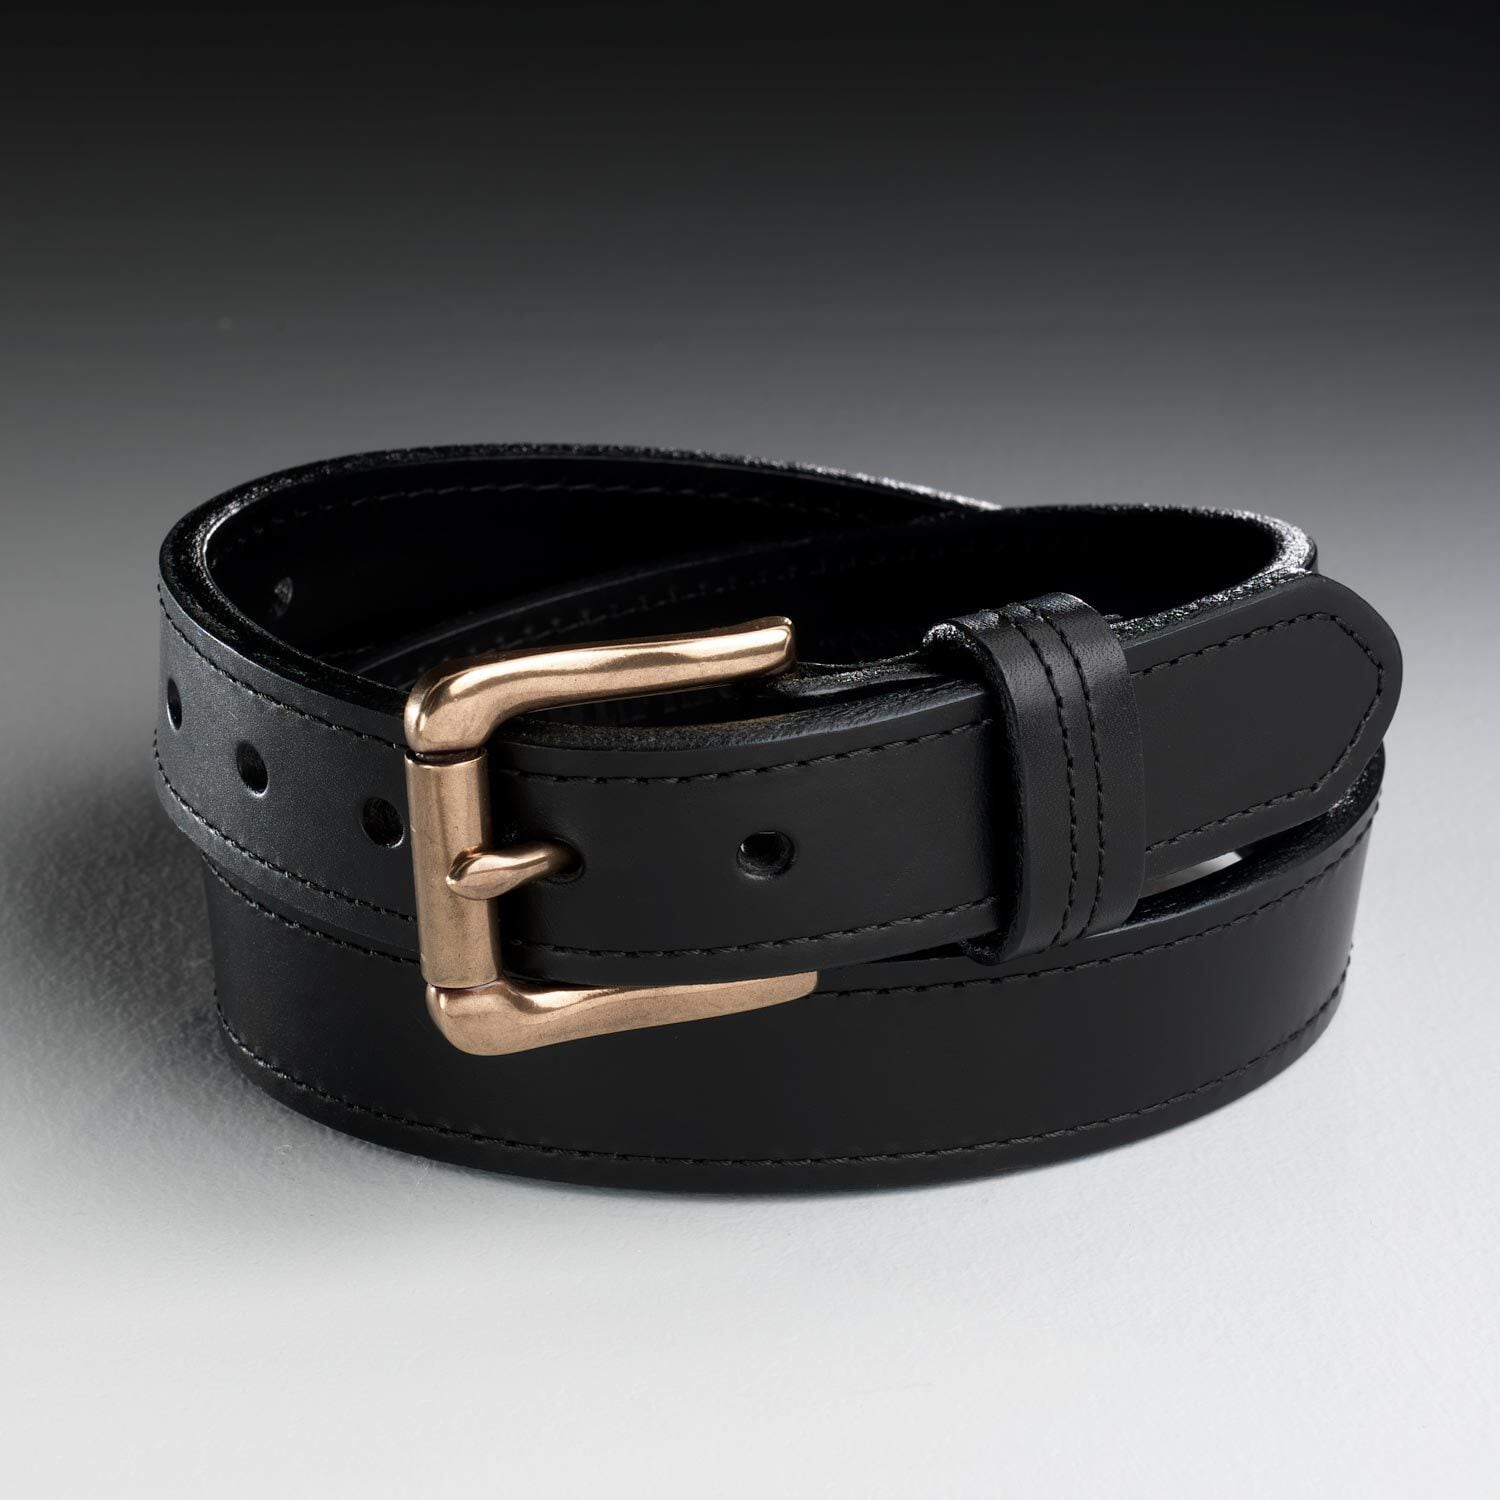 Bare bottom strapping with thick leather belt